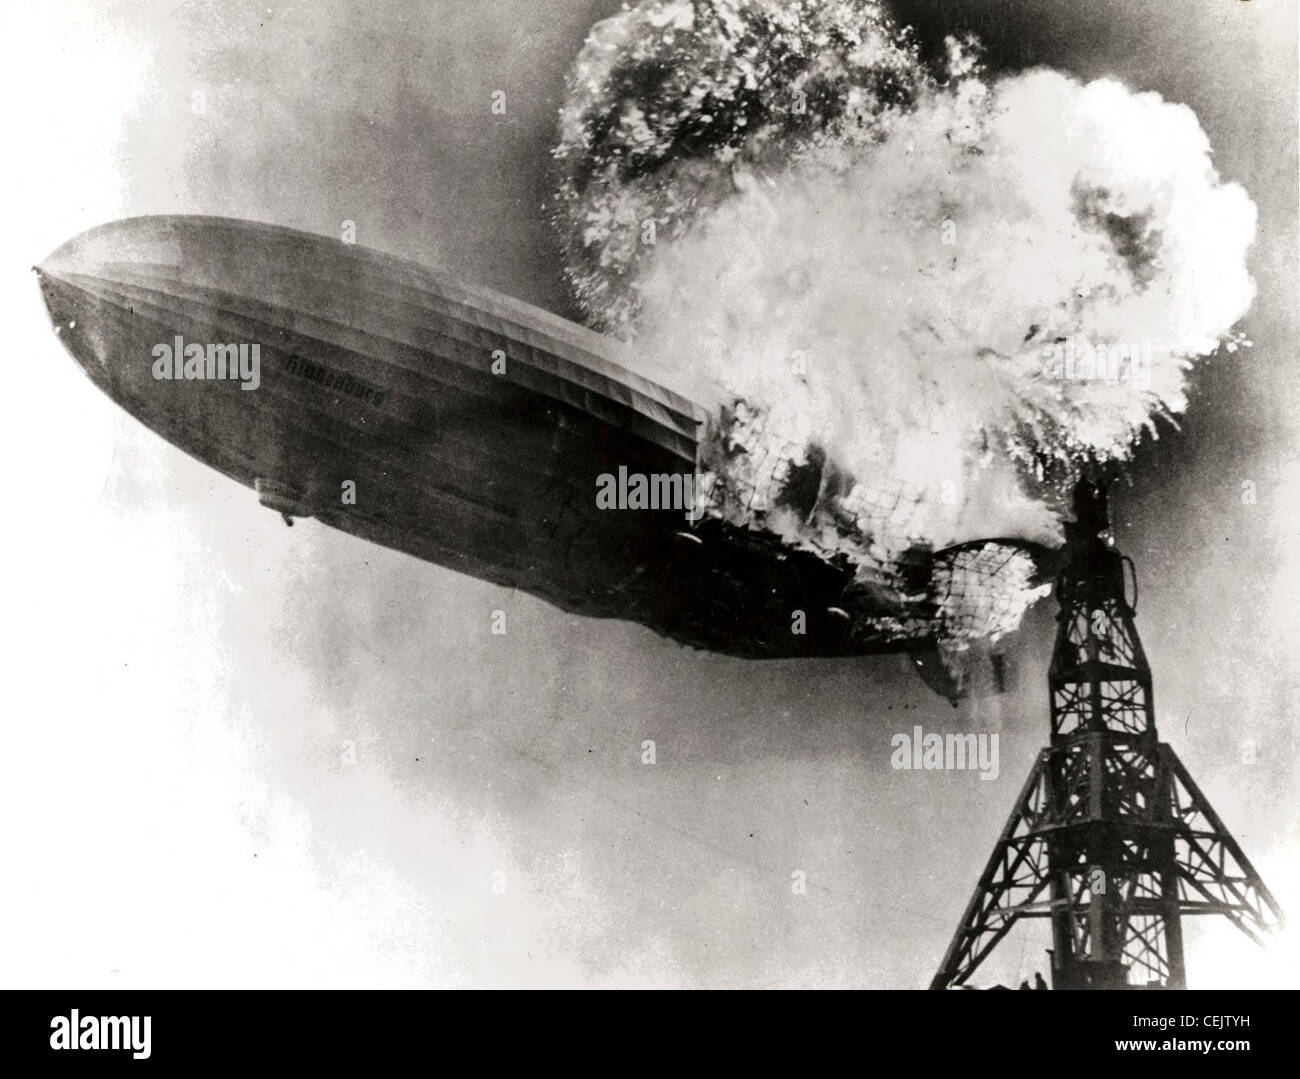 Hindenburg disaster - Stock Image